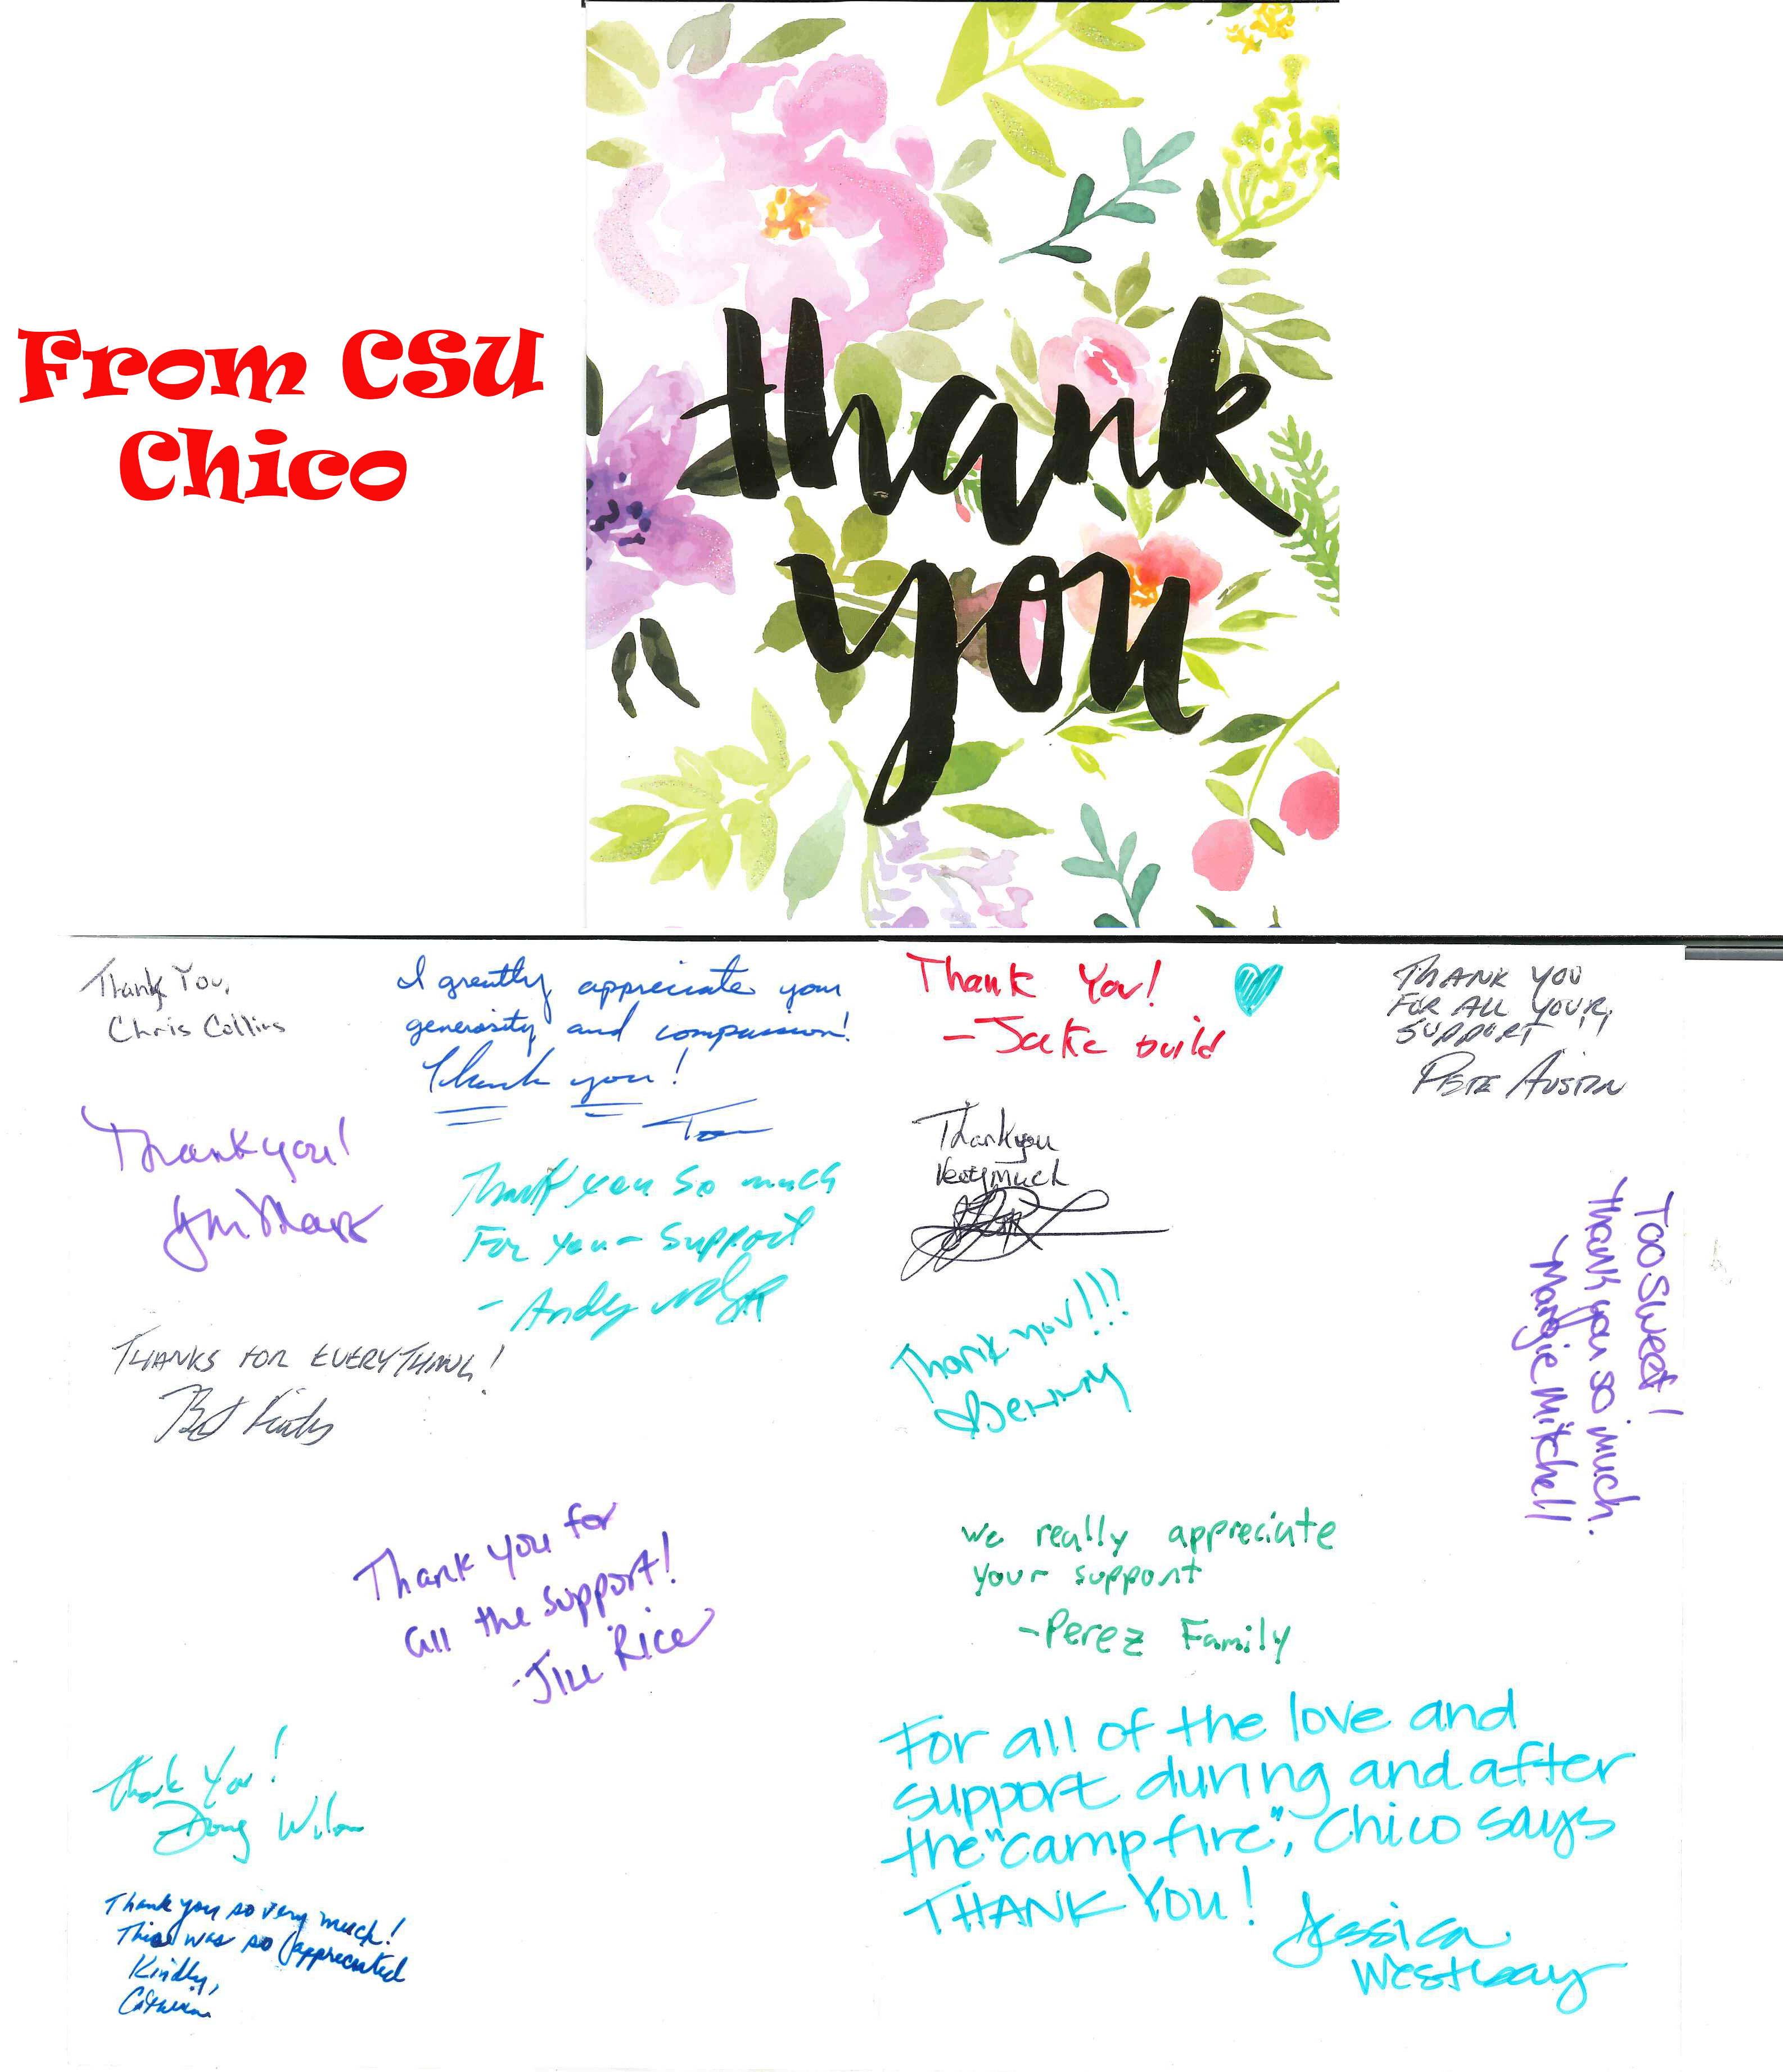 Thank you note from Chico